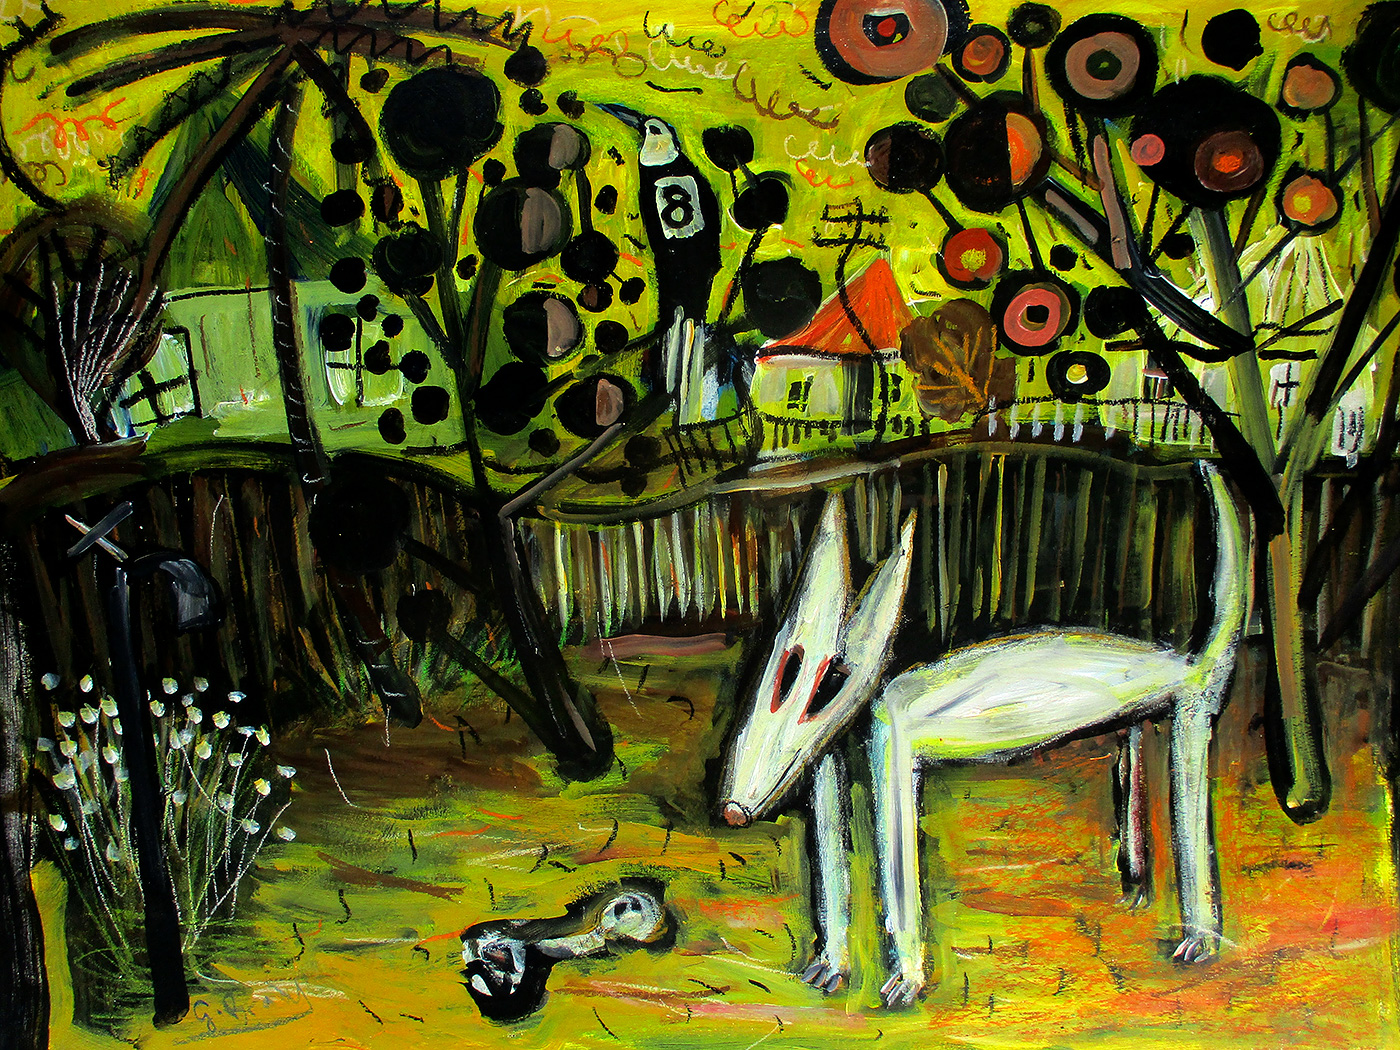 Glenn Brady - 'Bull Terrier in the Backyard'